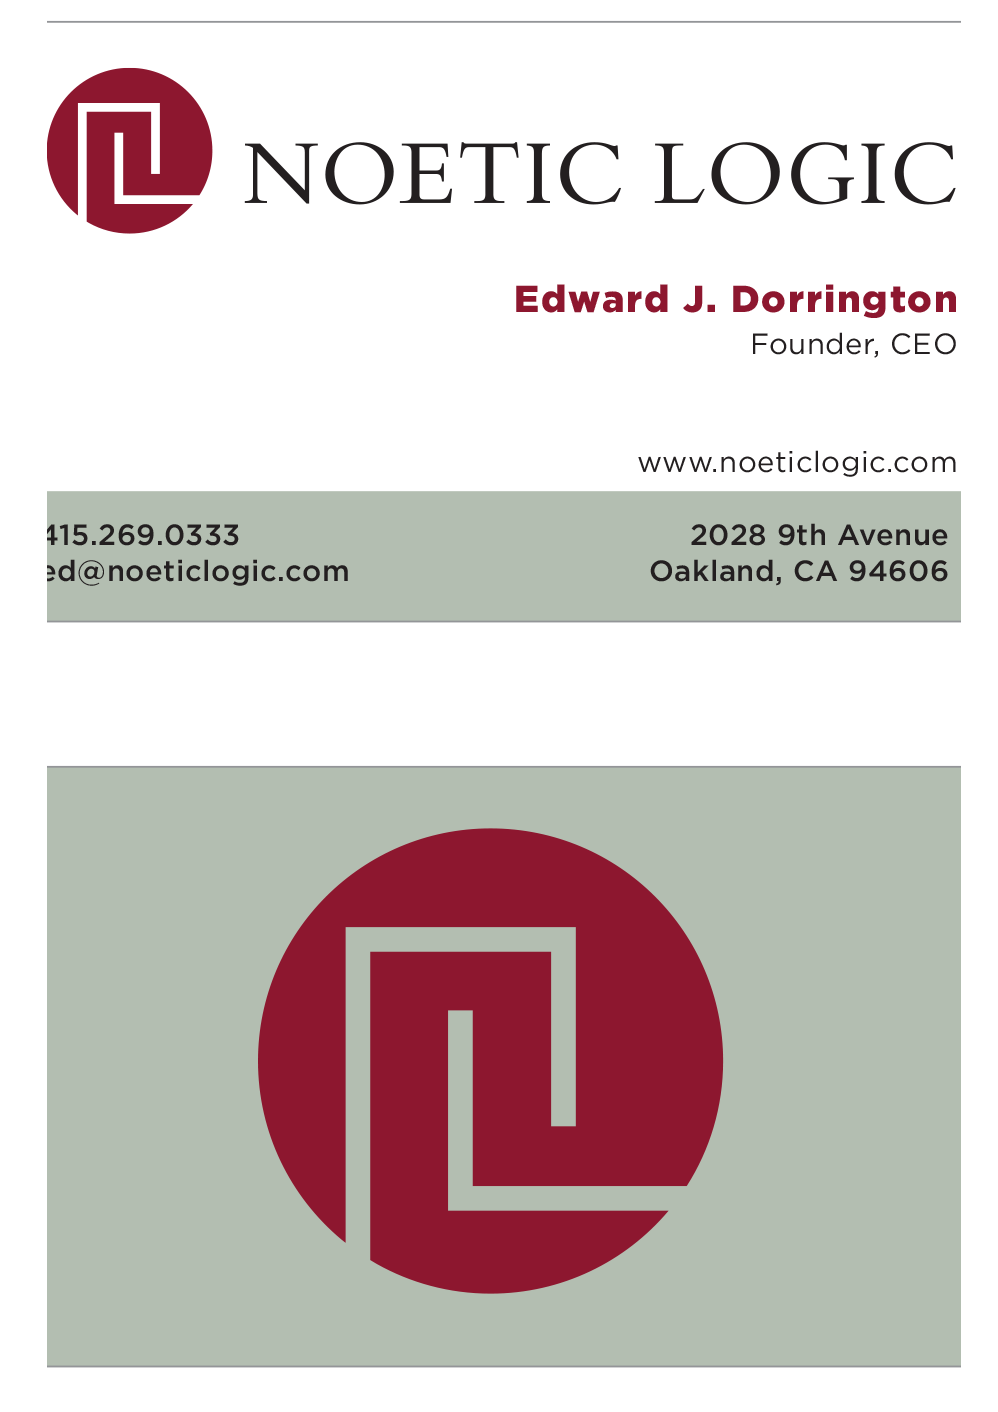 noetic logic ed biz cards.png